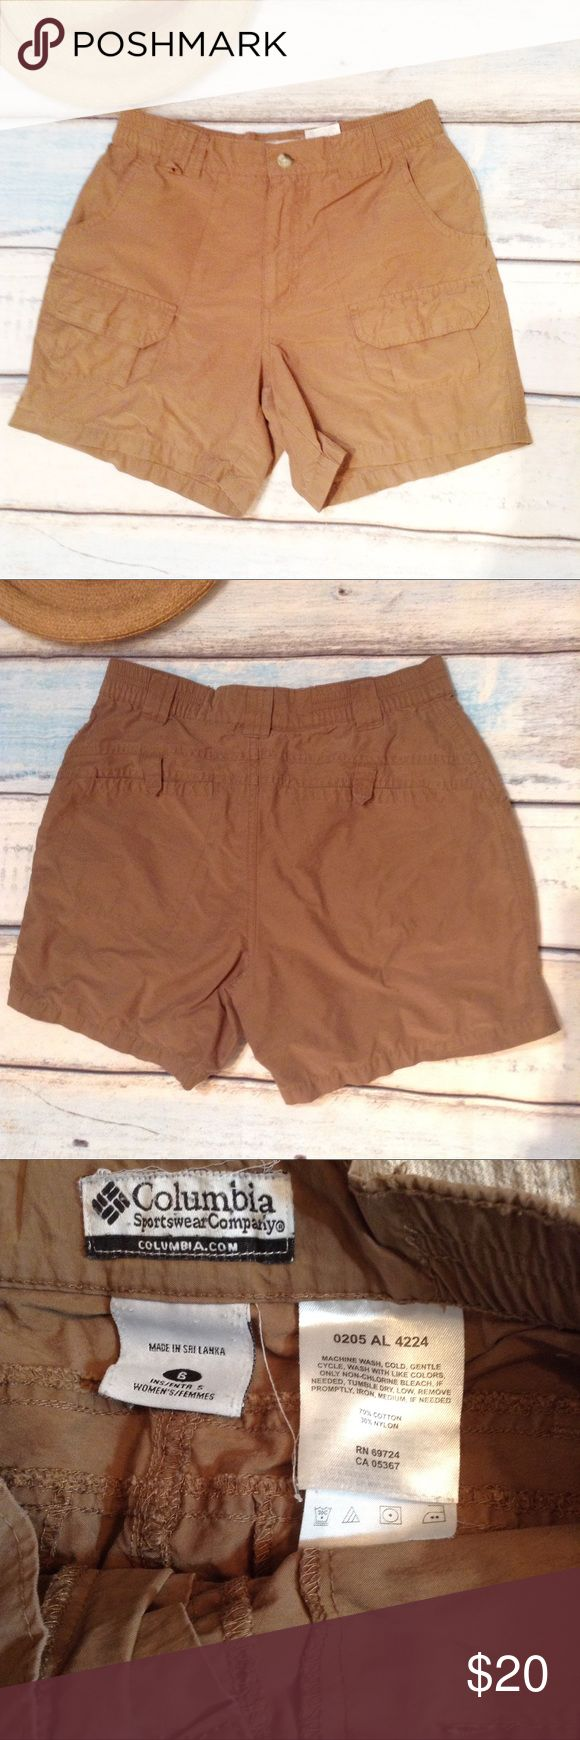 "COLUMBIA Sportswear Khaki Camping Hiking Shorts Columbia Sportswear Company dark khaki camping hiking shorts. Size 6. Elastic in the waist. Measures 13.5"" flat and unstretched at waist, 10"" front rise, and 4.5"" inseam. No modeling. Smoke free home. I do discount bundles. Columbia Shorts"